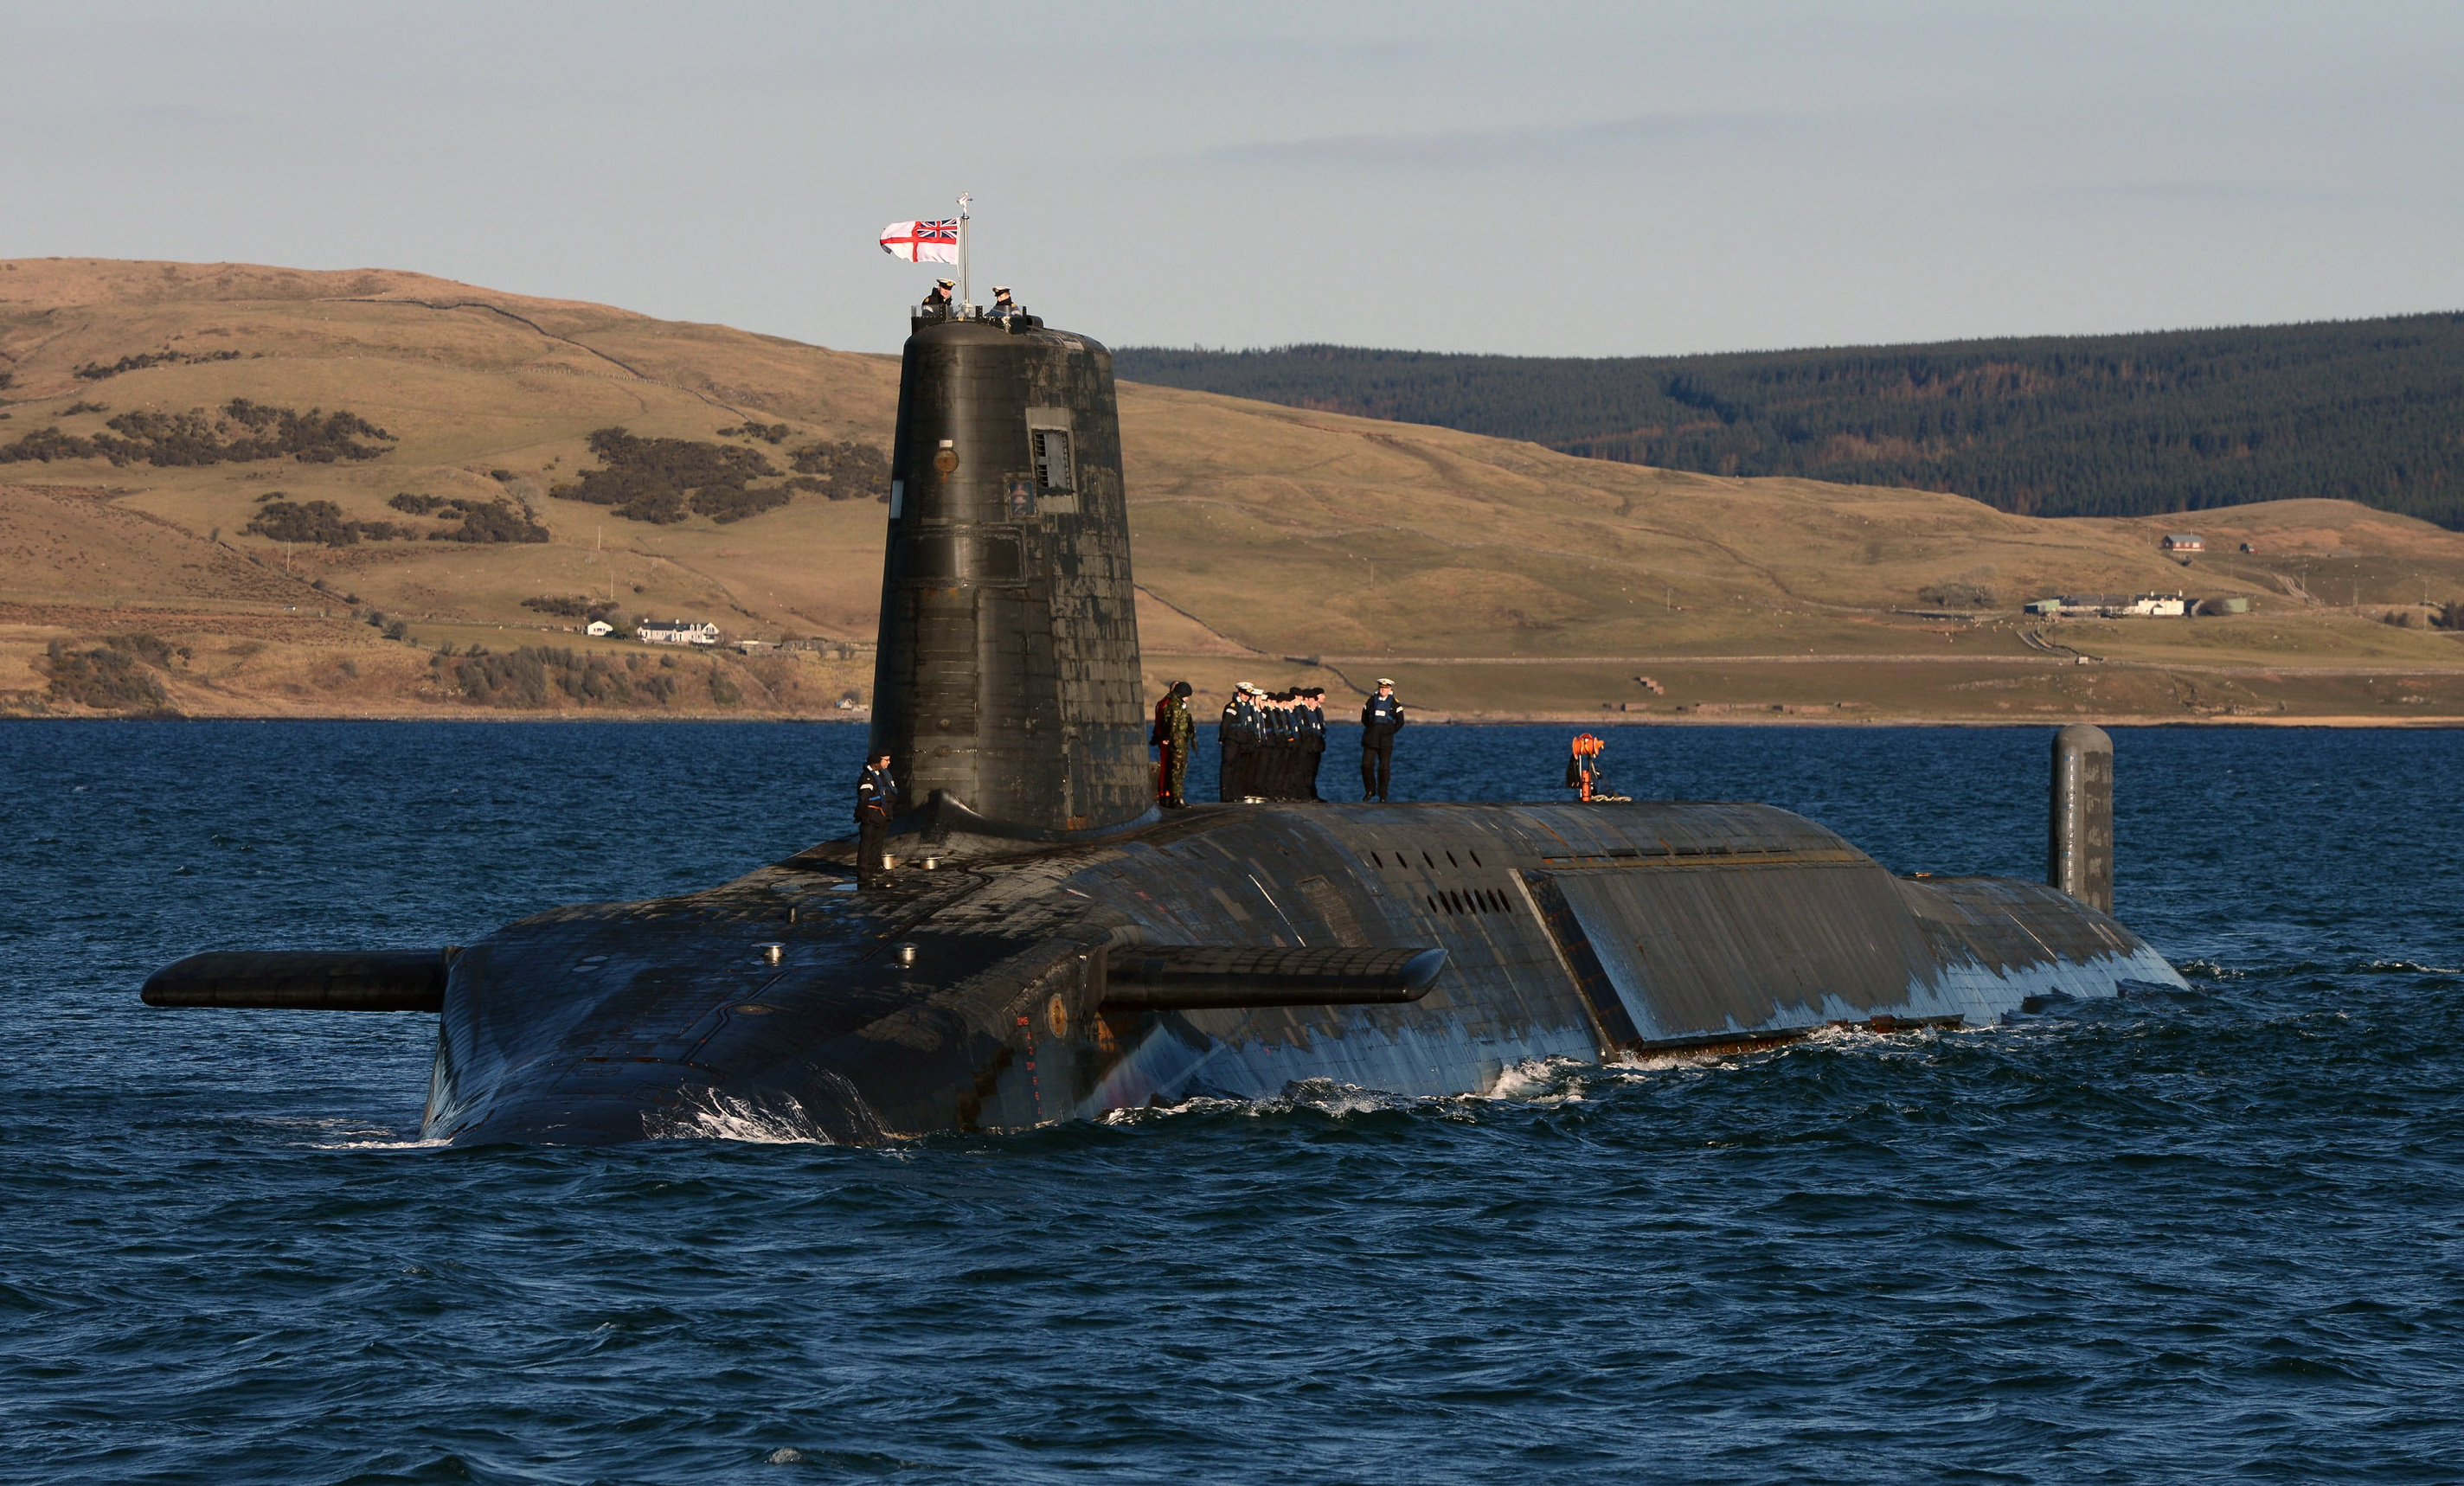 Trident Nuclear Submarine HMS Victorious Its Harder To Get Into Most Nightclubs   Declares Trident Whistle blower